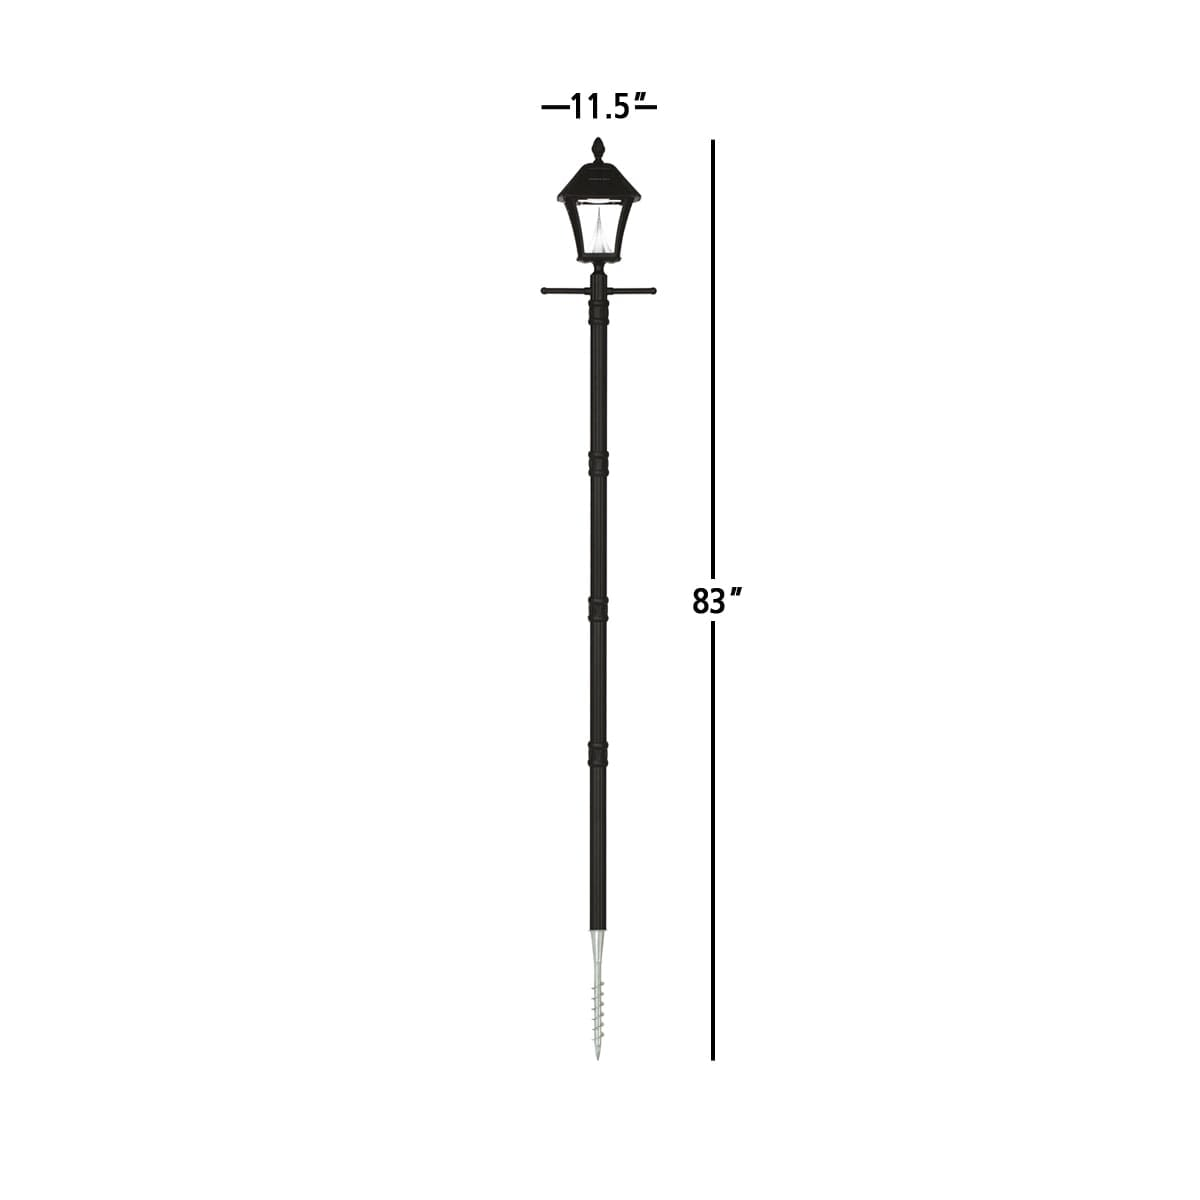 Baytown Solar Lamp Series by Gama Sonic GS-106S-G Measurements